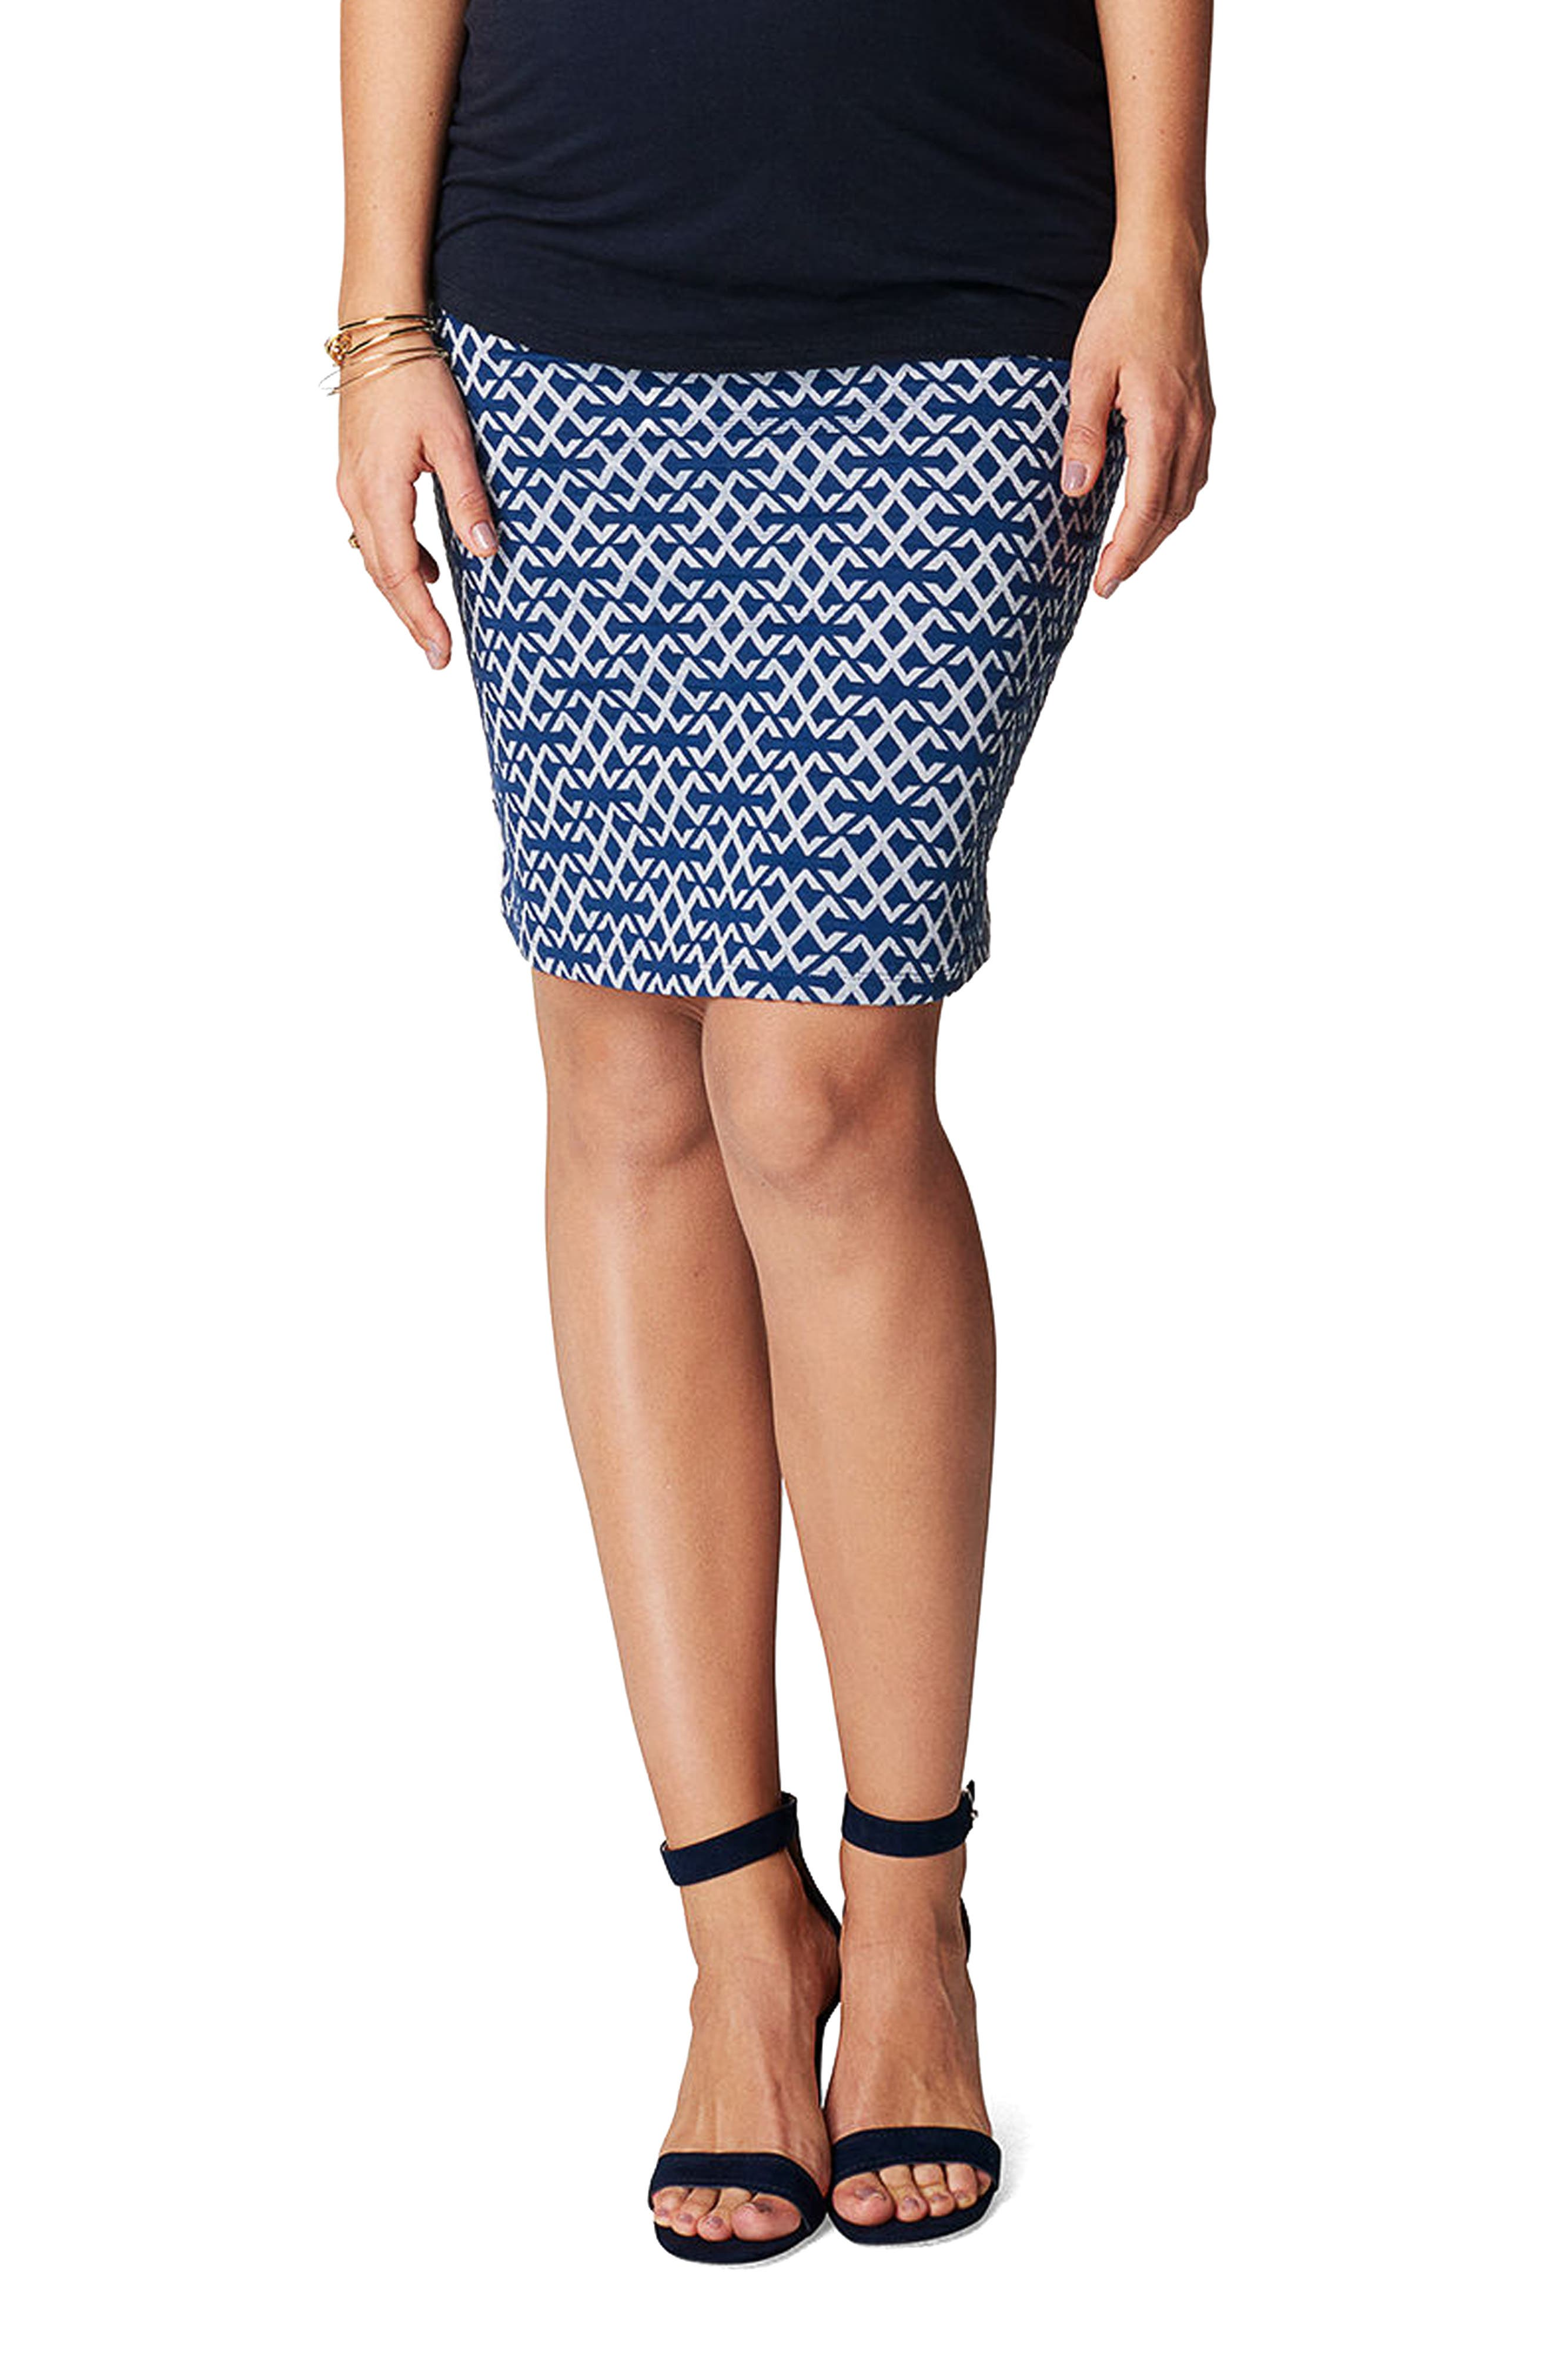 Luna Over the Belly Maternity Skirt,                         Main,                         color, Blue